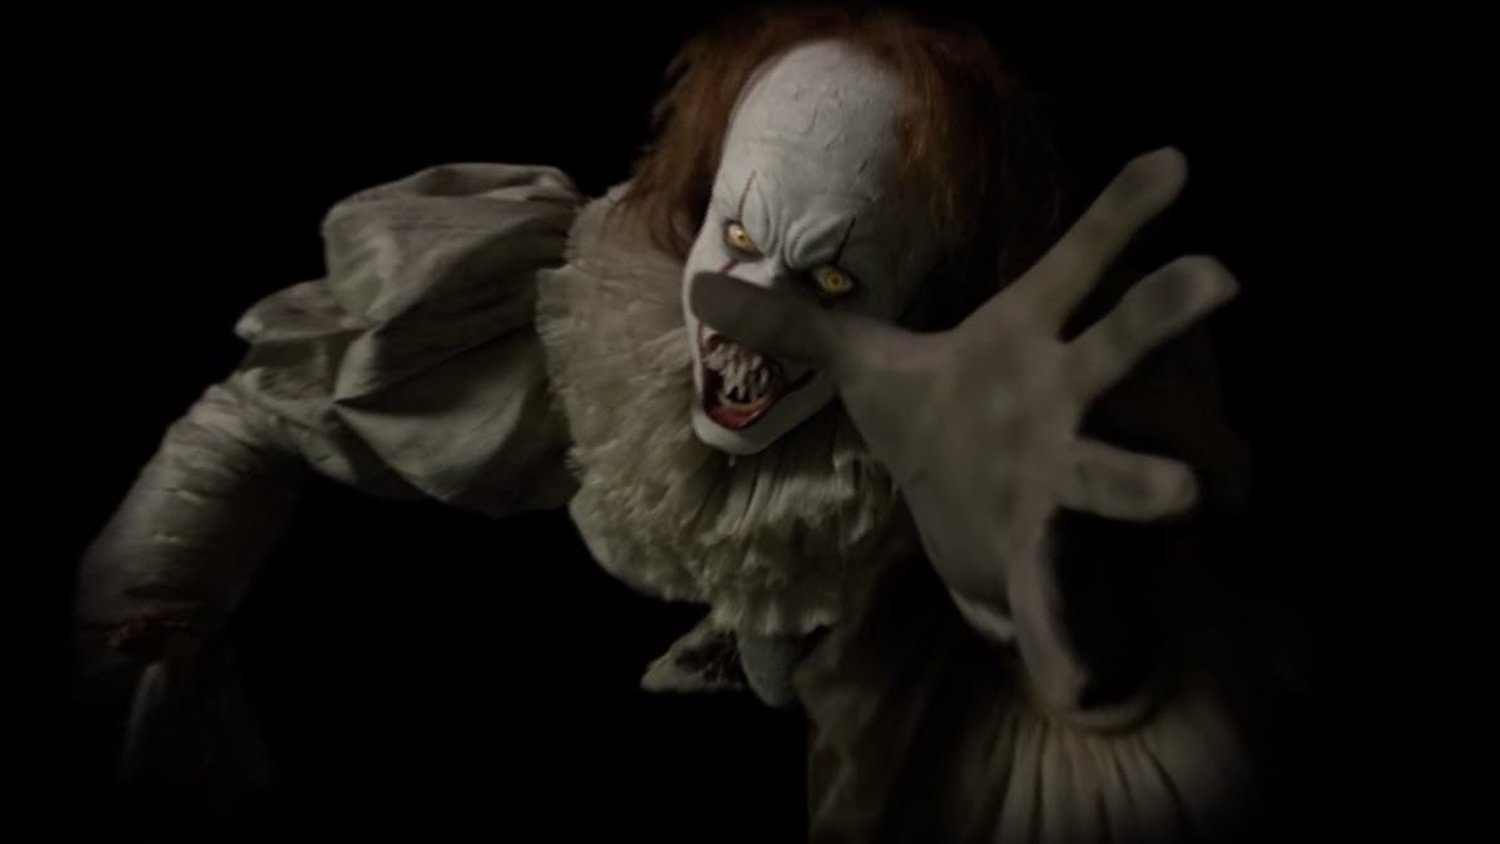 New Set Photo From IT: CHAPTER 2 Features Pennywise The Clown Being